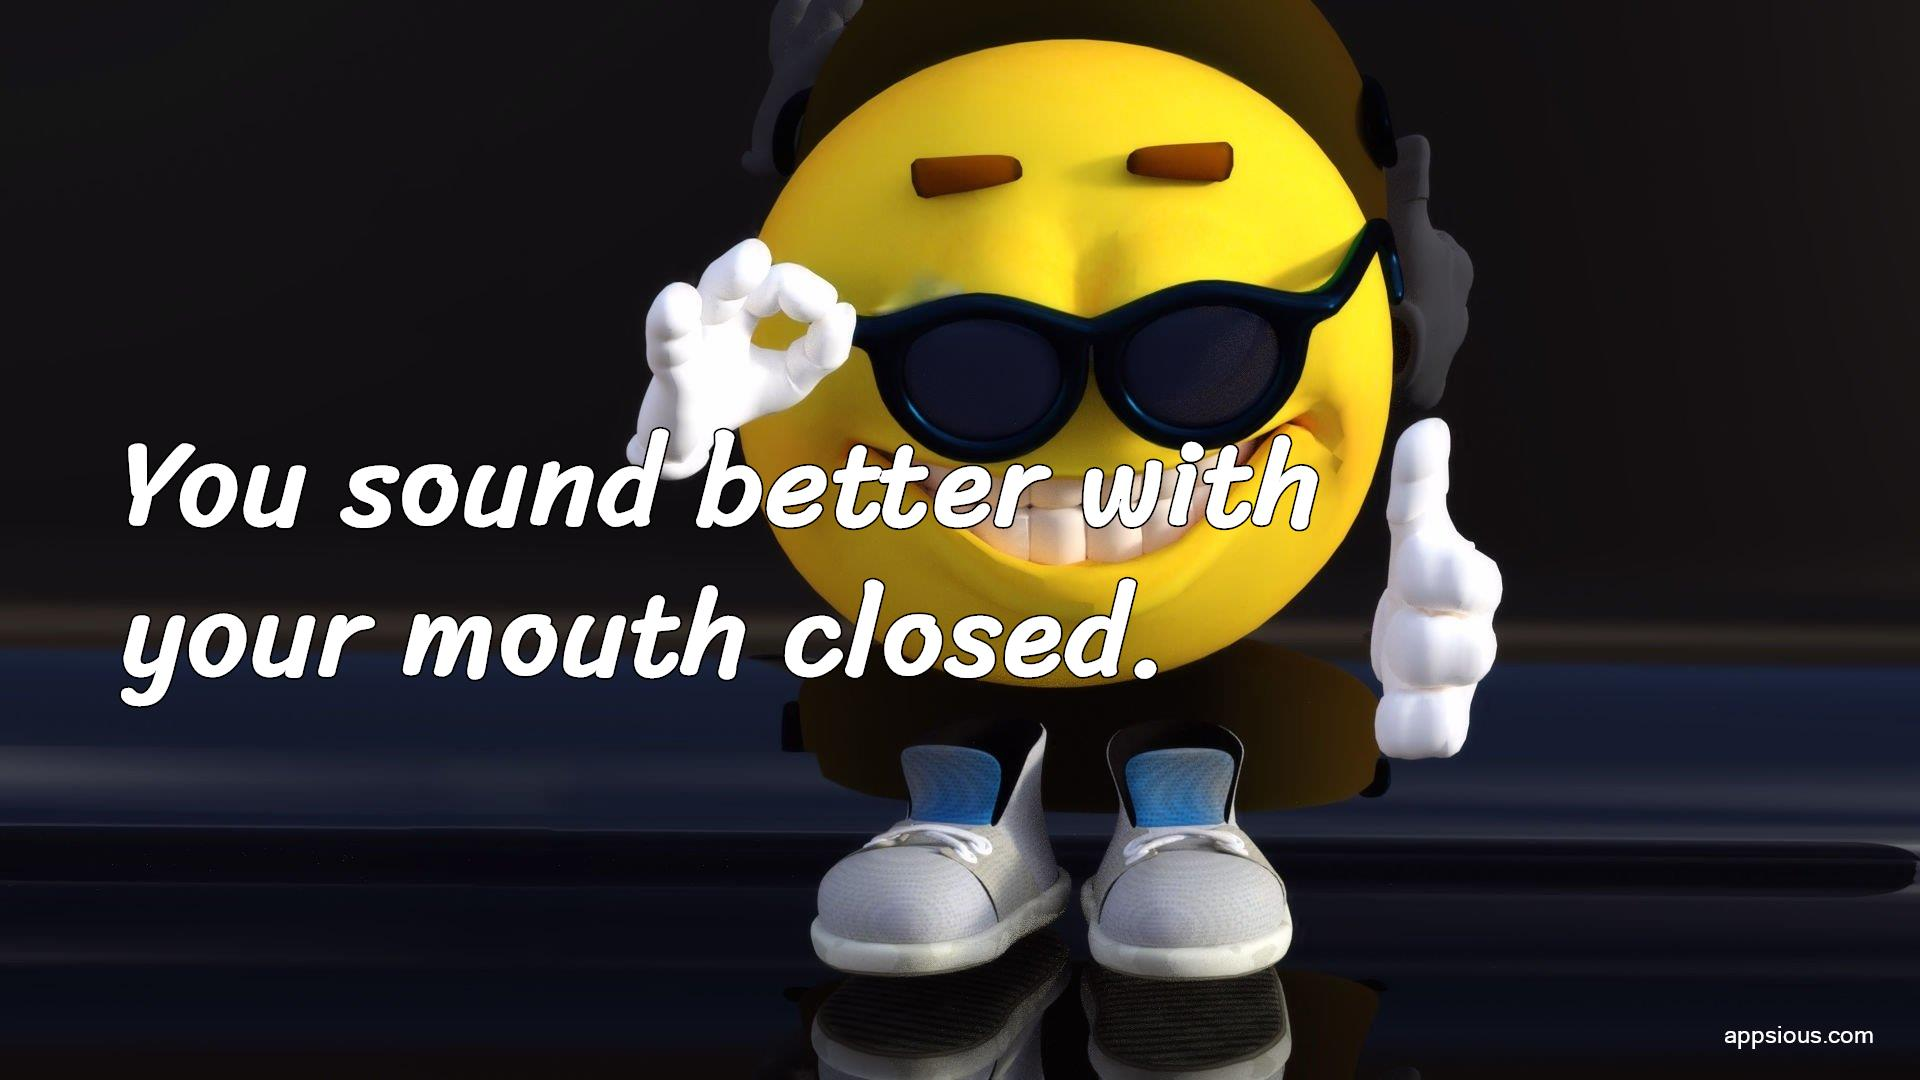 You sound better with your mouth closed.